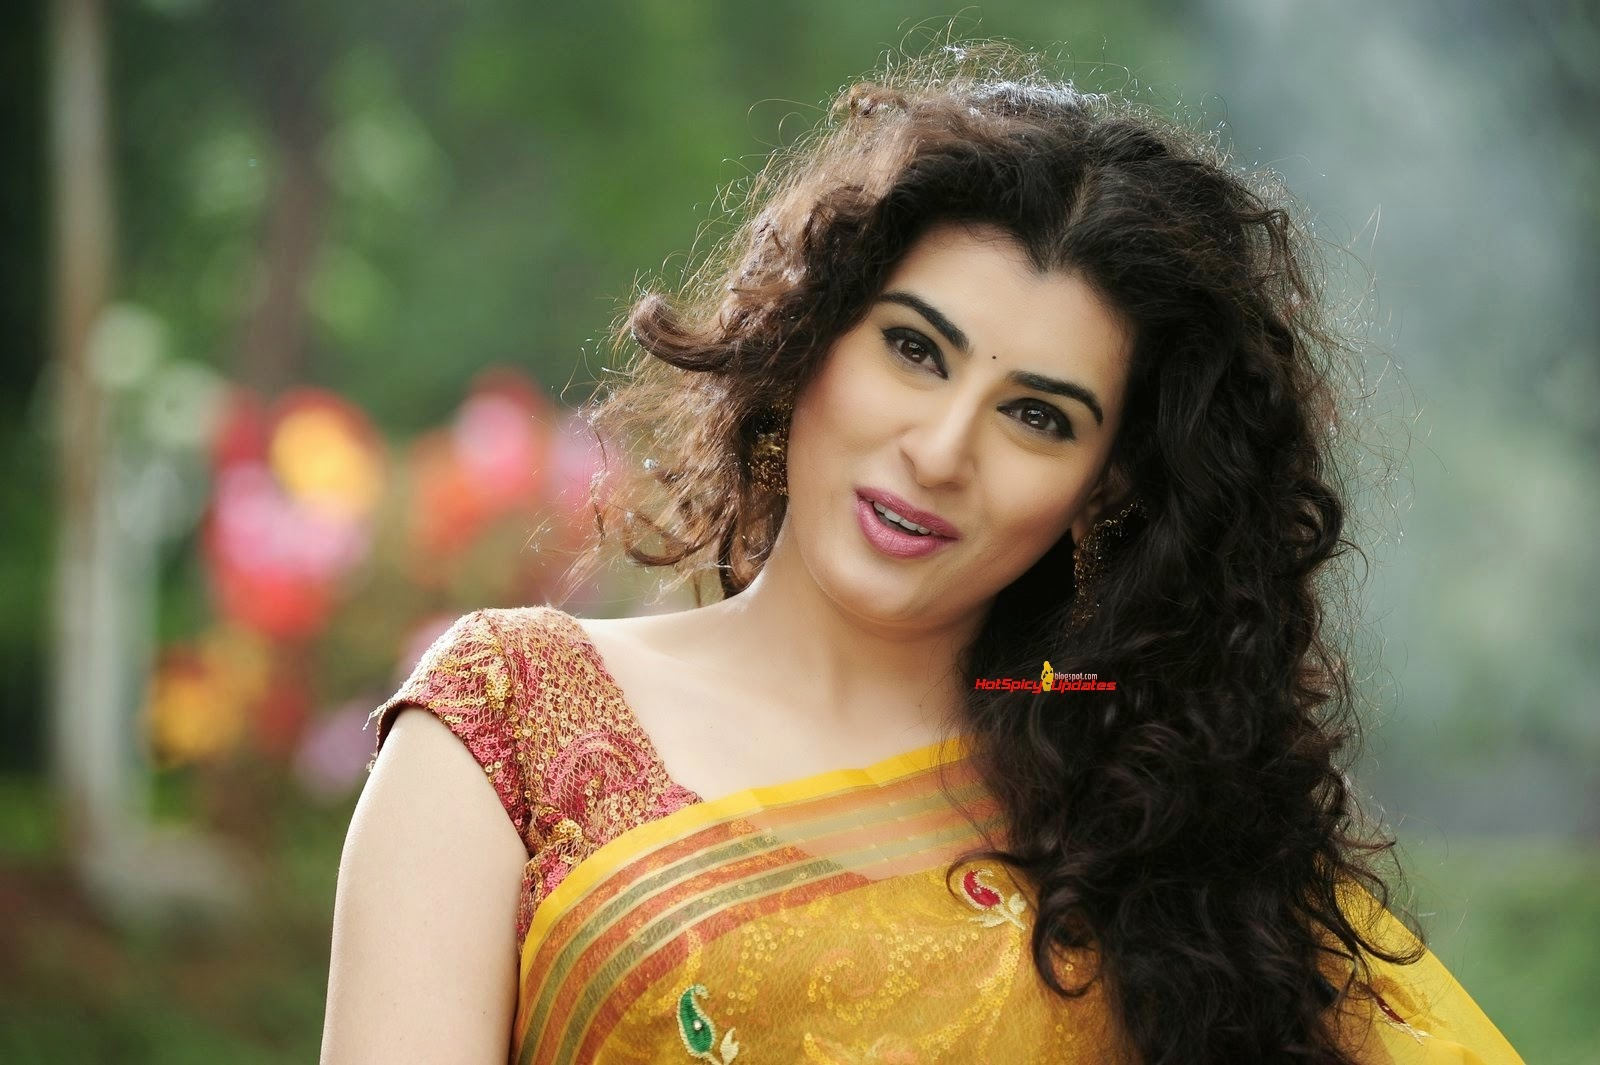 Telugu actress archana 39 s anandini movie stills hd wallpapers download free high definition - Archana wallpaper ...